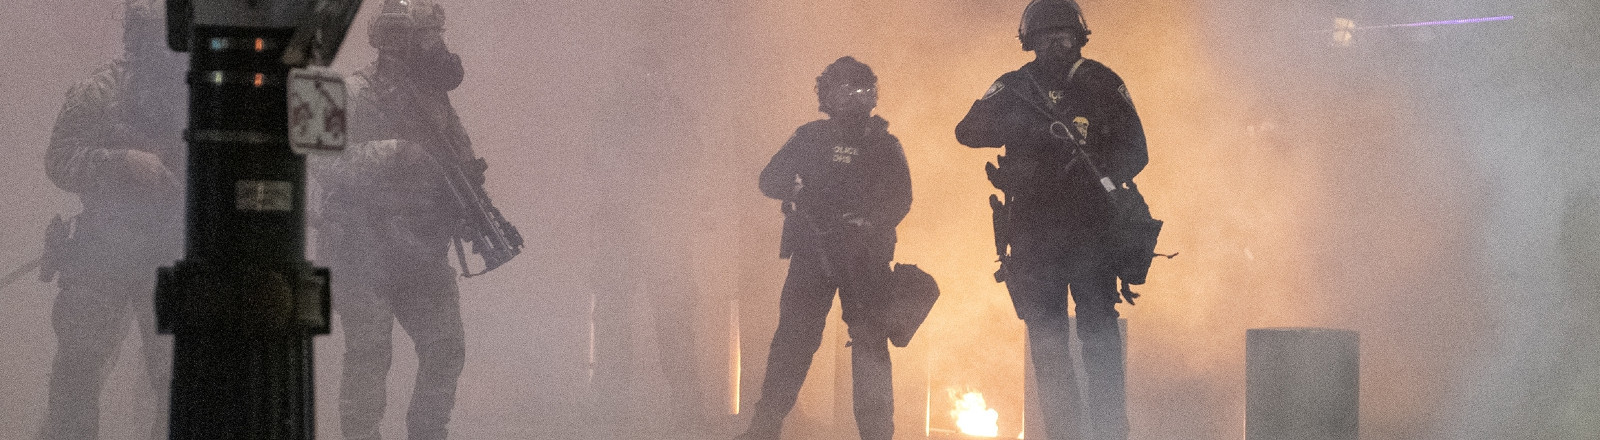 21.07.2020, USA, Portland: 6291910 21.07.2020 Federal law enforcement are seen standing next to an open flame through CS gas during the 54th day of protesting against police brutality and racial inequality in Portland, the United States.